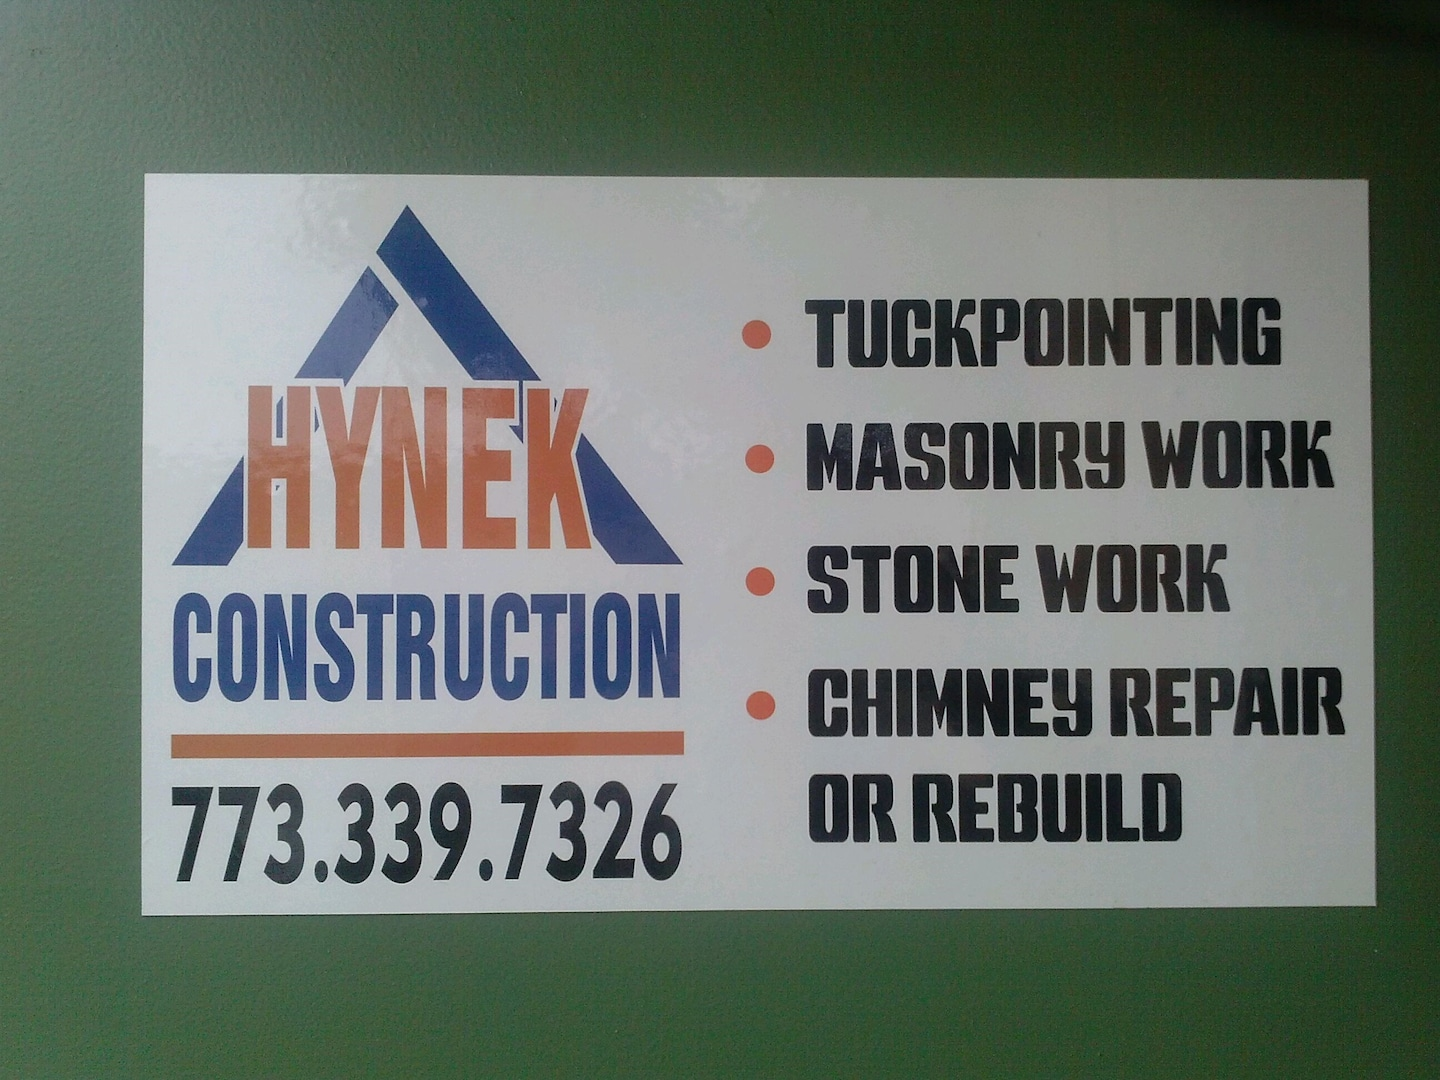 Hynek Construction